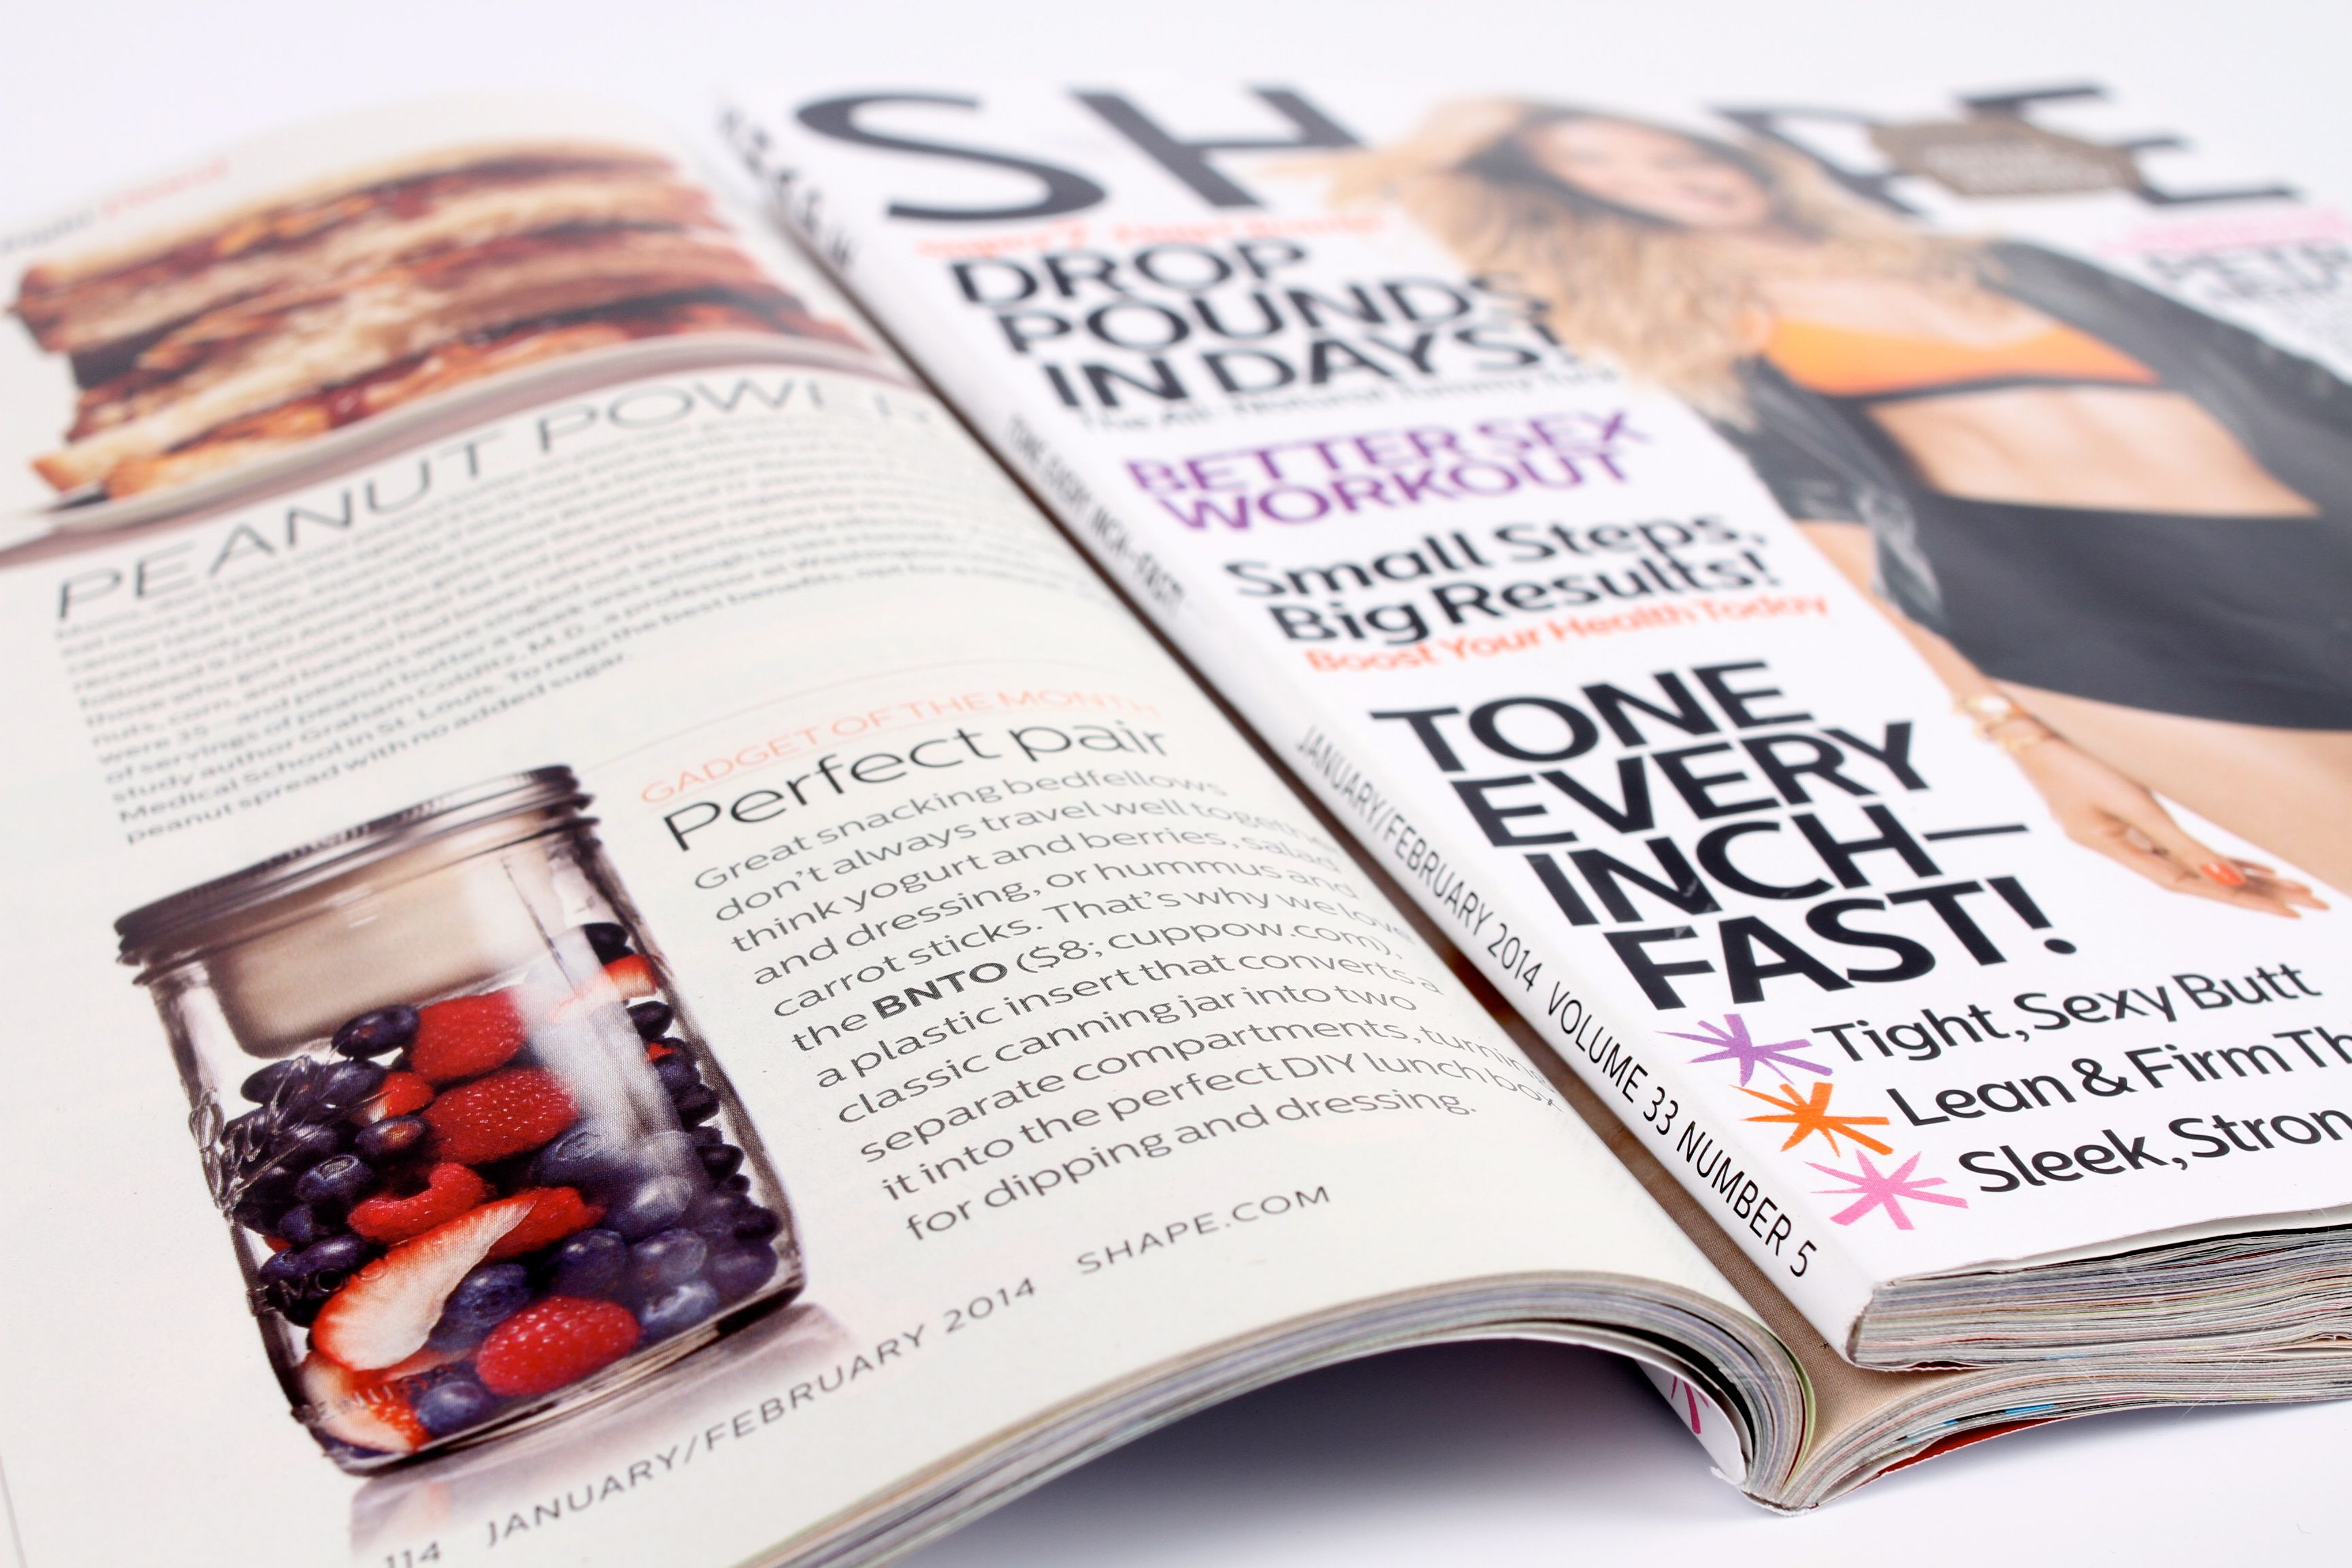 Check out BNTO playing the role of 'Gadget of the Month' in the January edition of SHAPE Magazine!